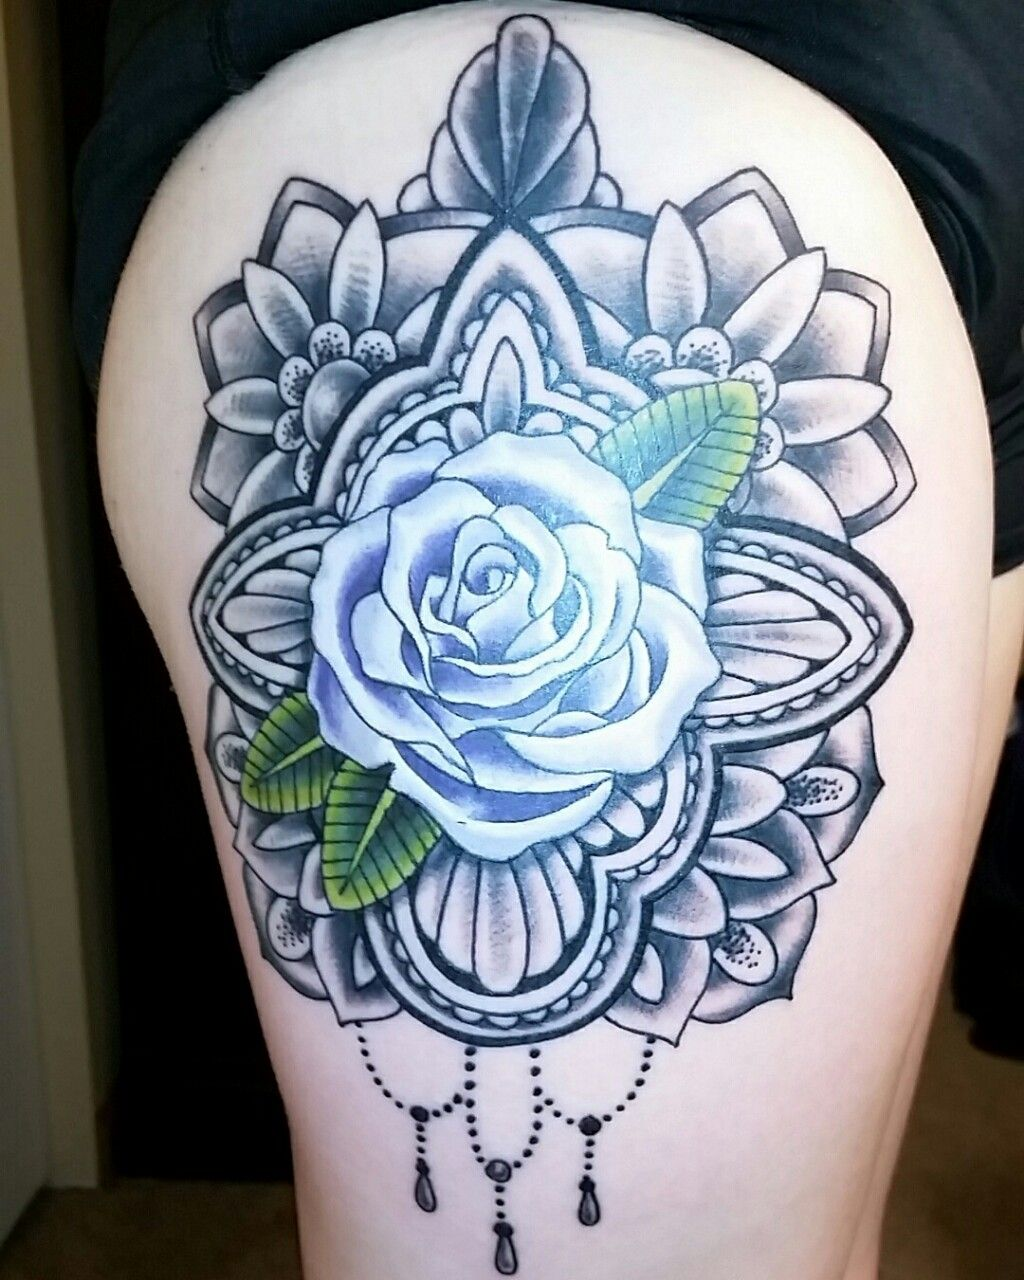 Done by matt stankis at northside tattoos in wilmington